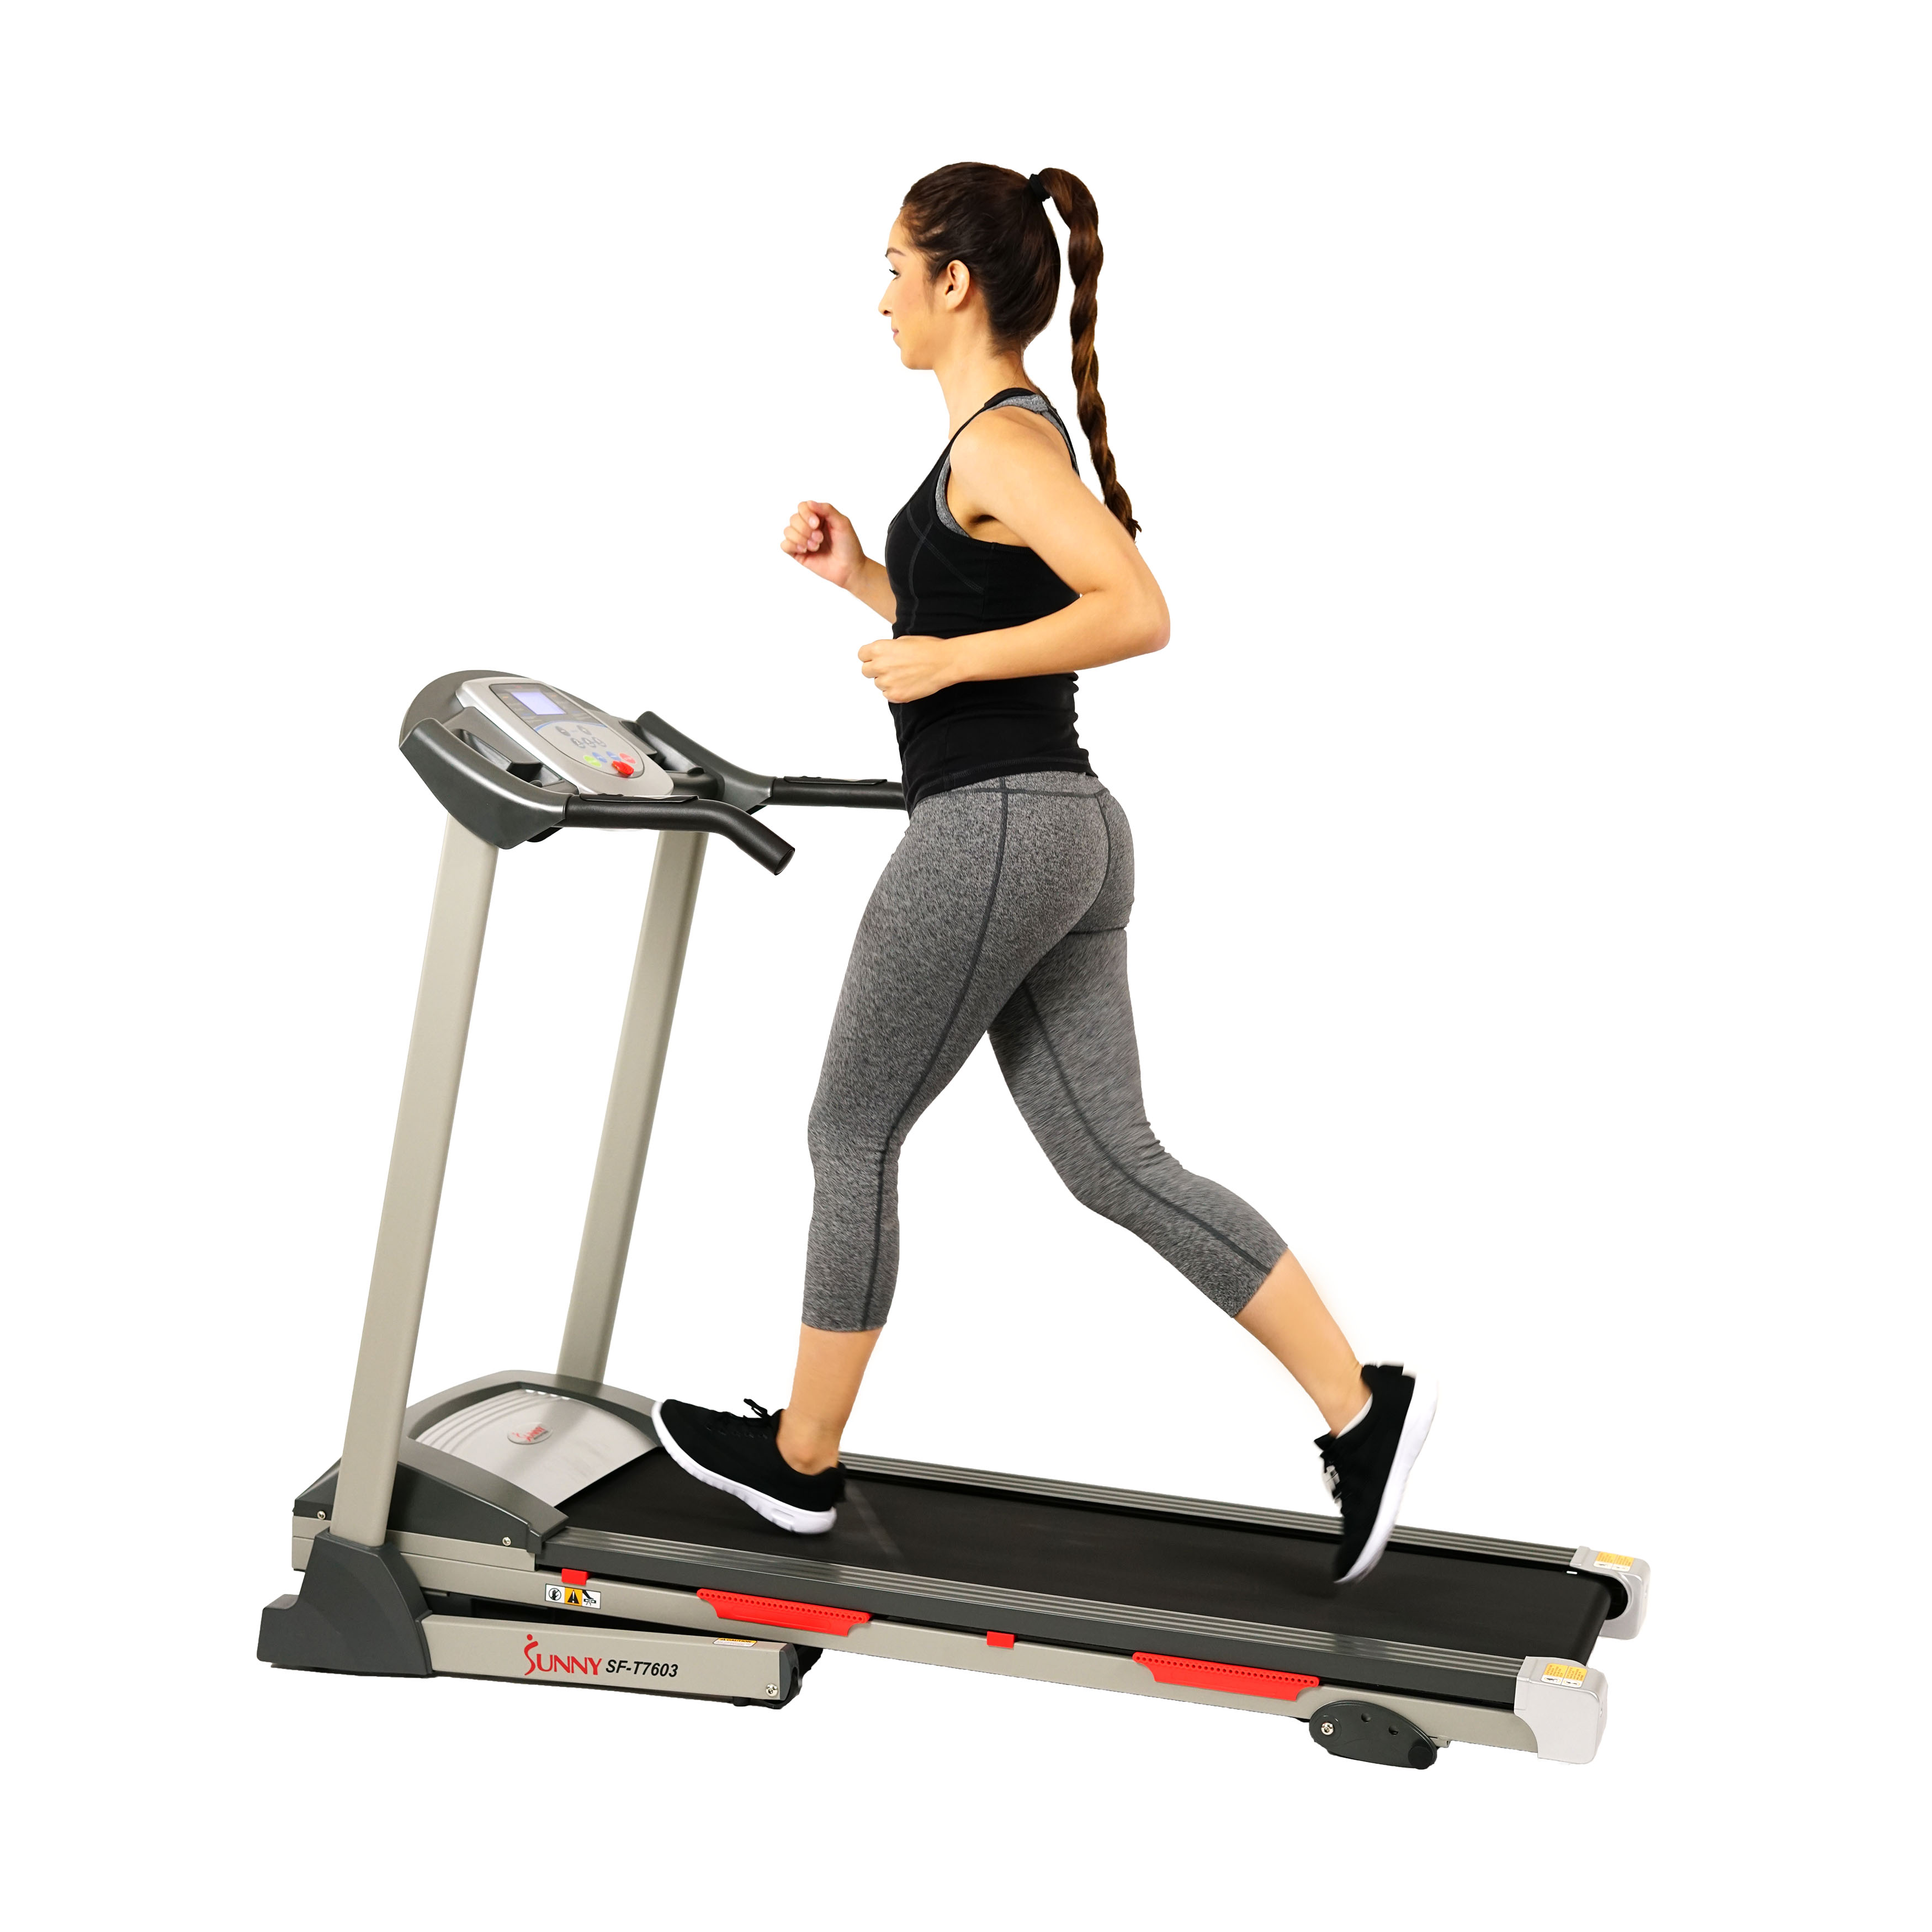 Sunny Health & Fitness SF-T7603 Motorized Folding Treadmill w/ Manual Incline